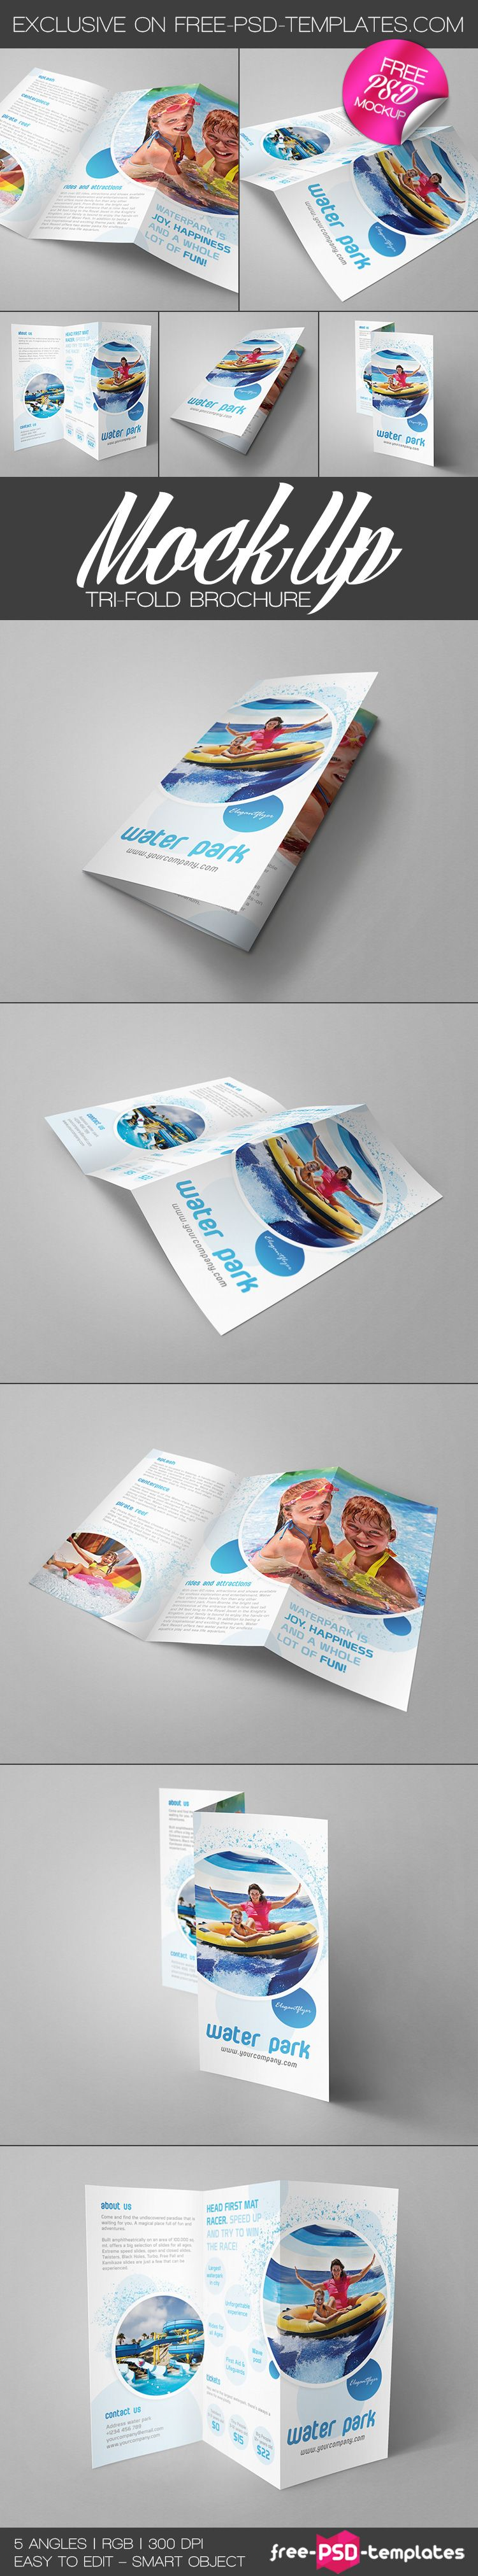 Free TriFold Brochure Mockup  Free Psd Templates  Free